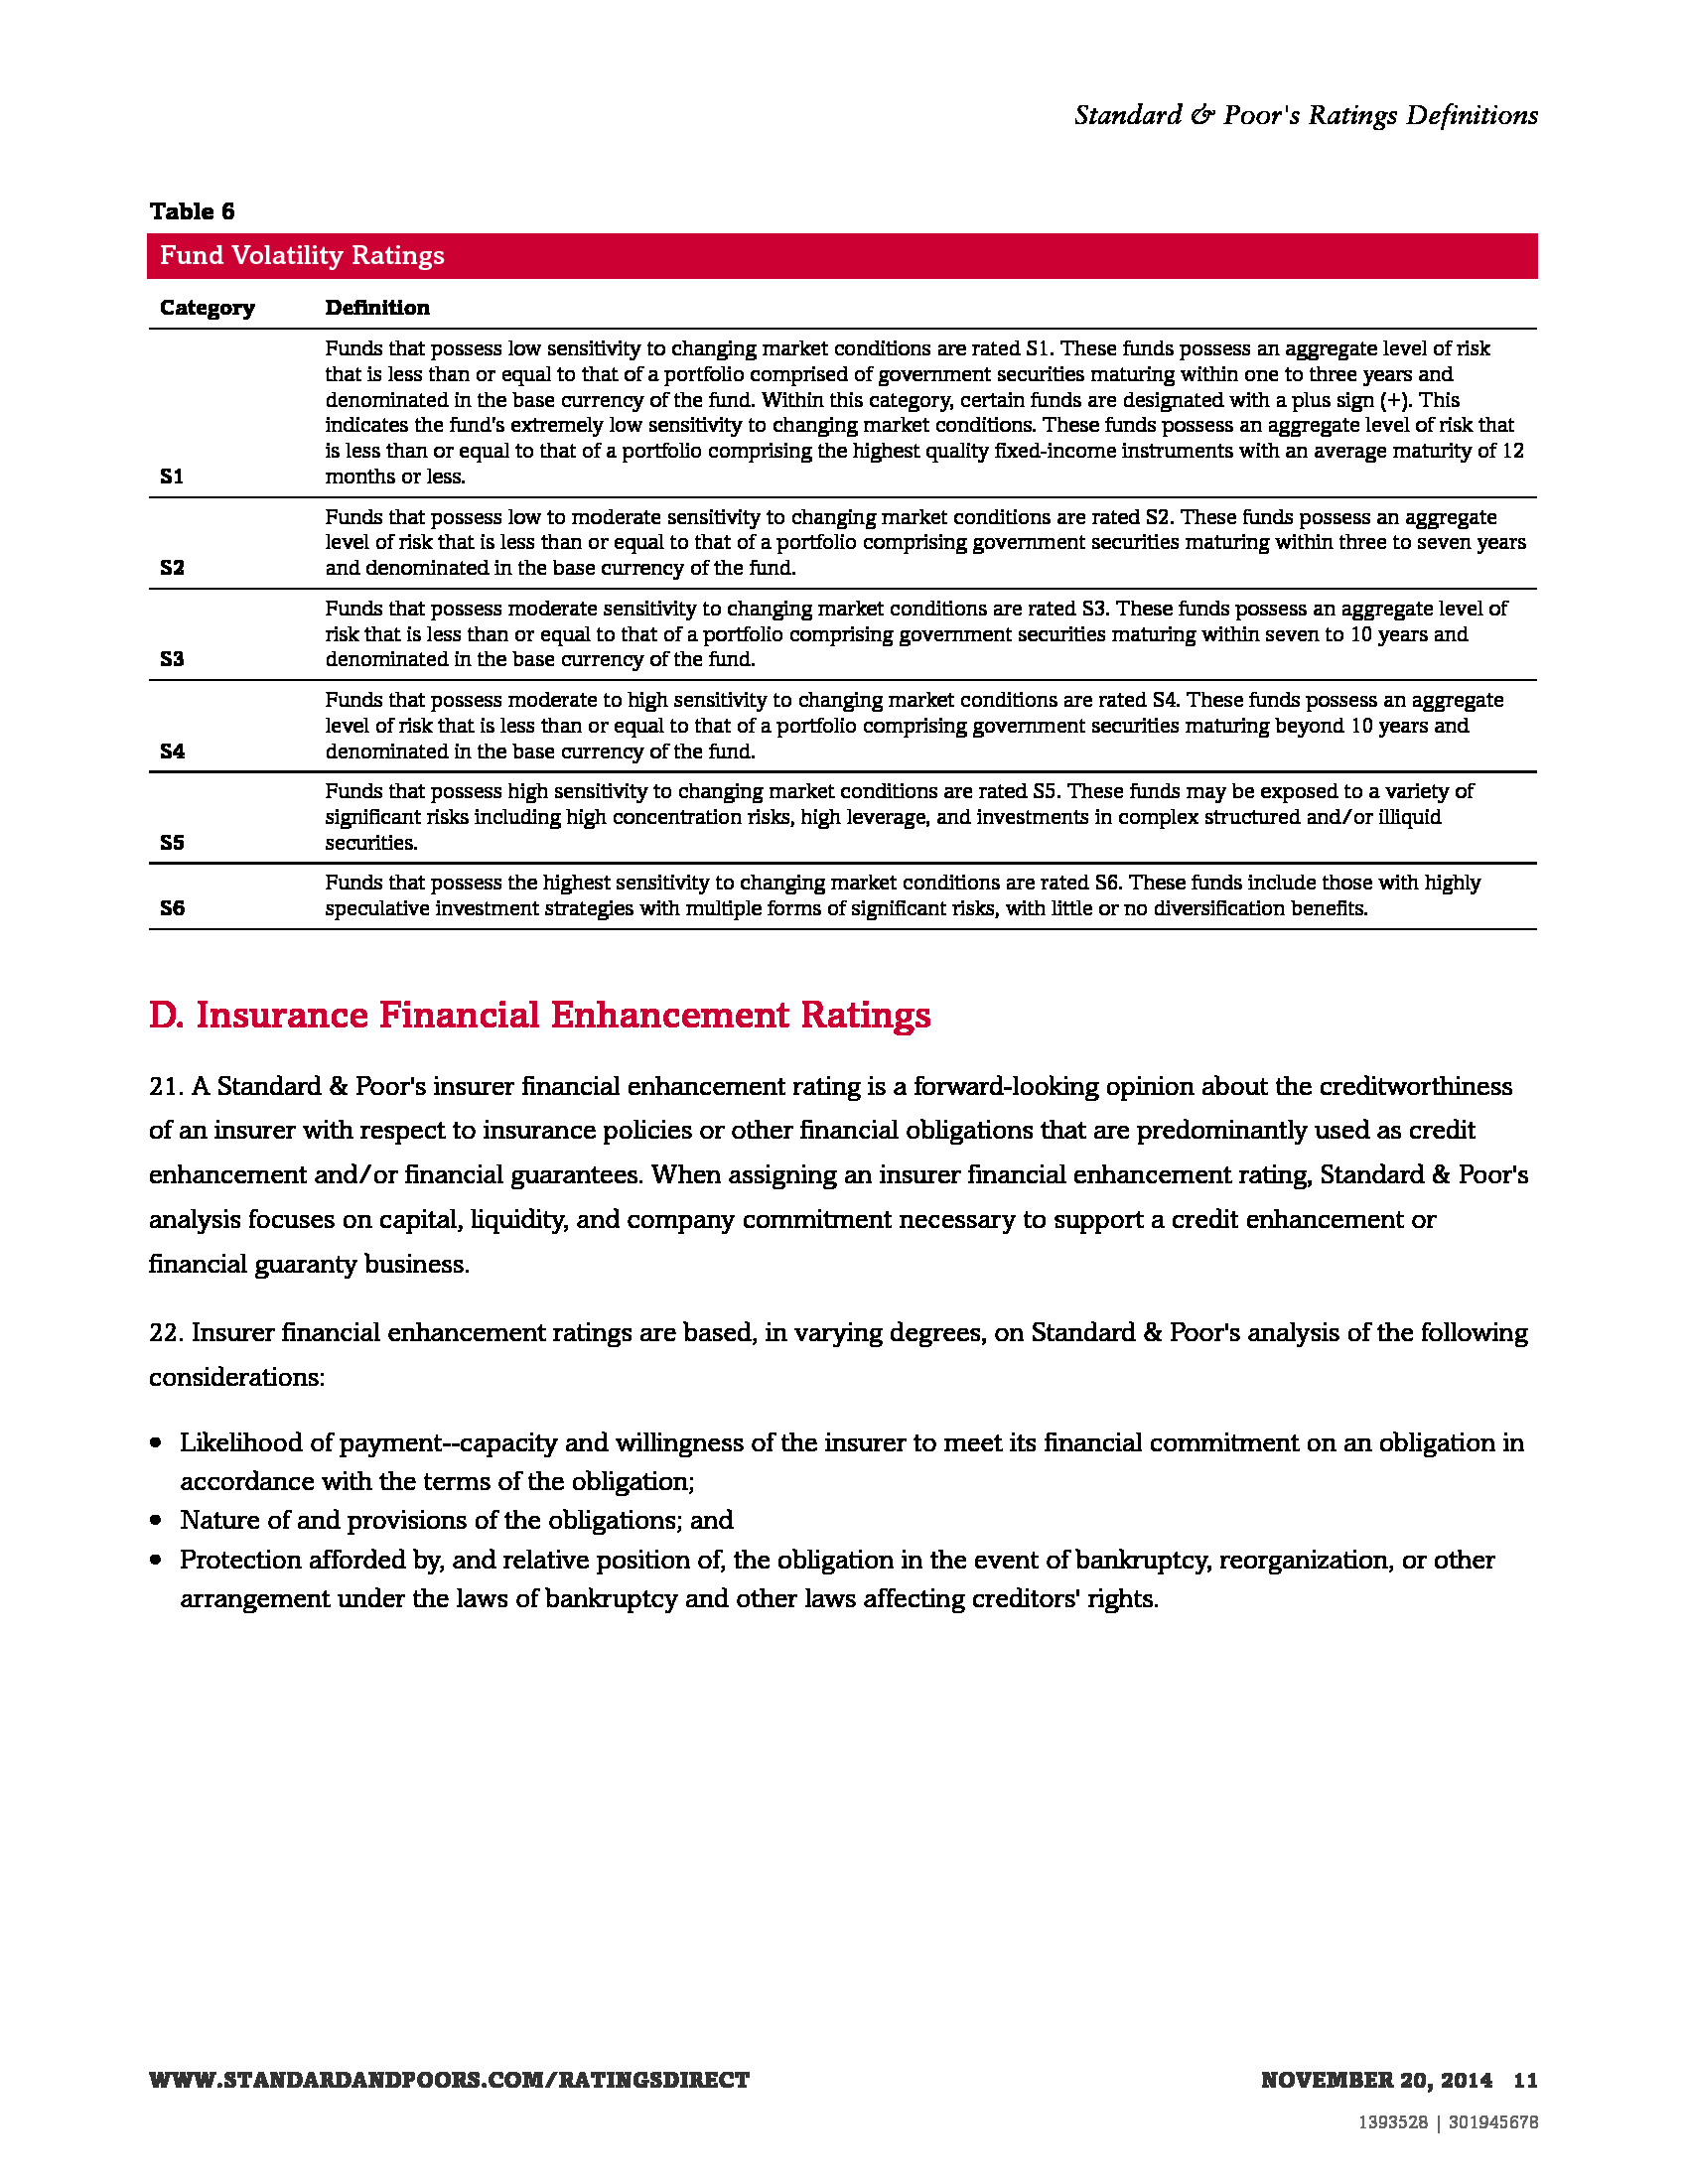 Advisorselect - Standard & Poor's Ratings Definitions